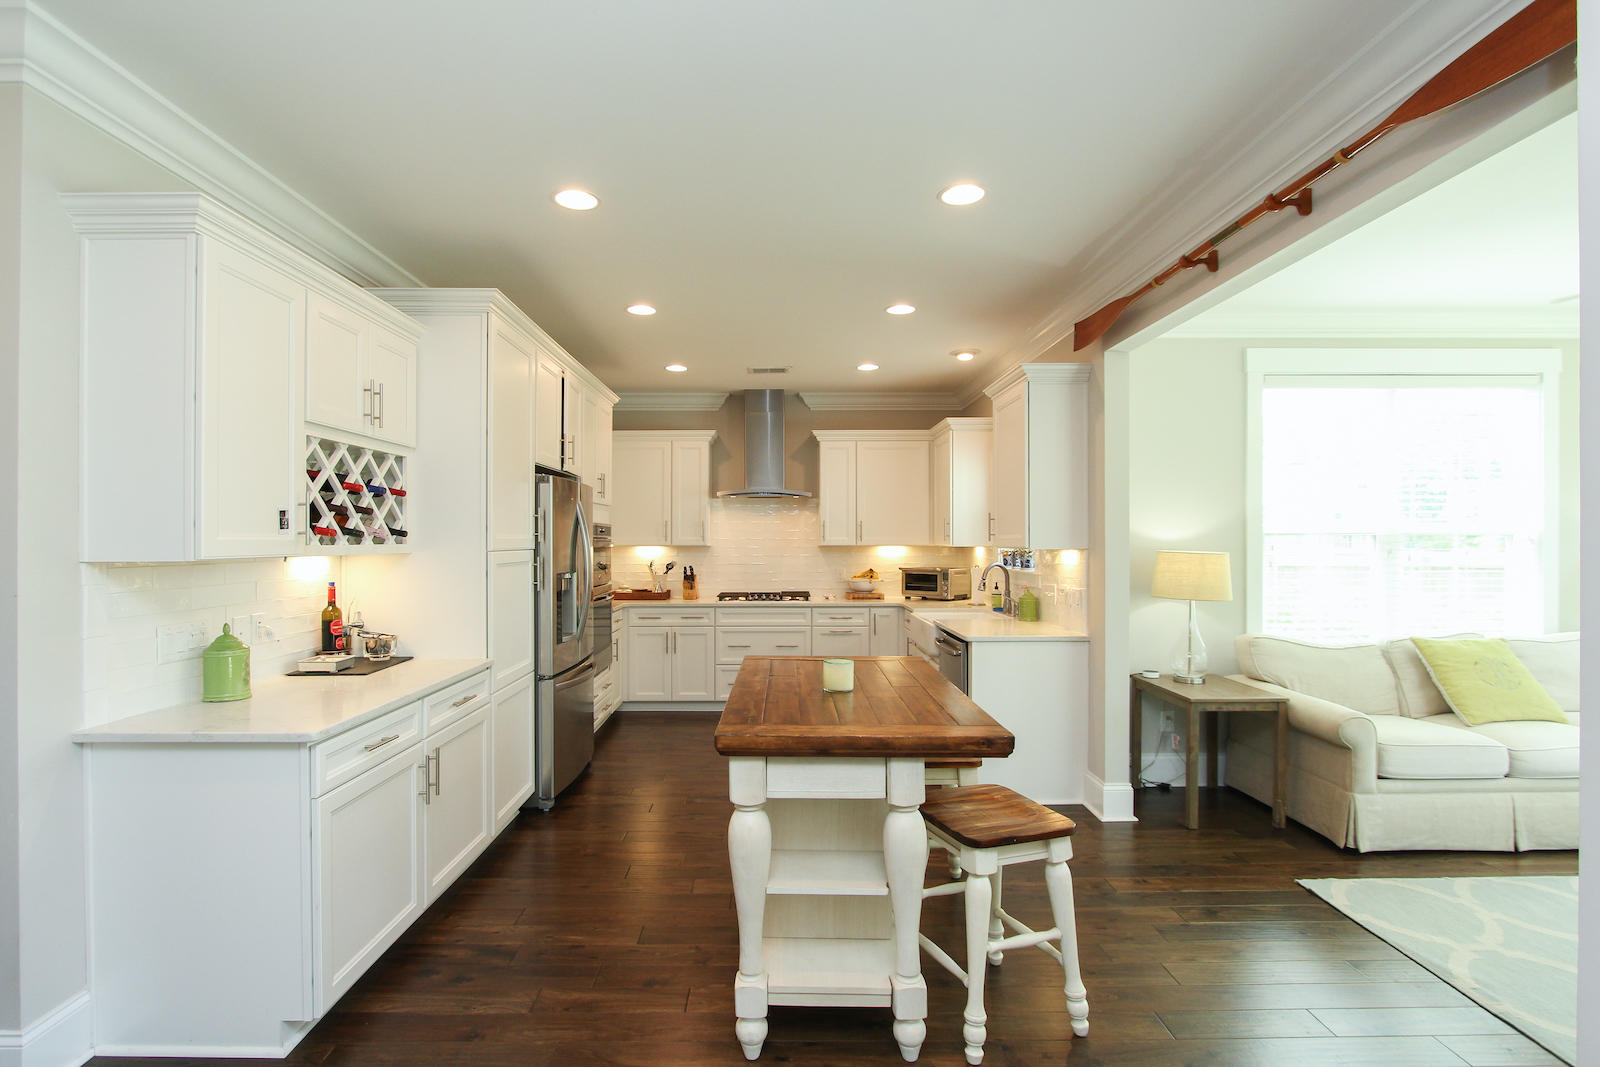 The Village at Stiles Point Homes For Sale - 706 Farm Cottage, Charleston, SC - 0